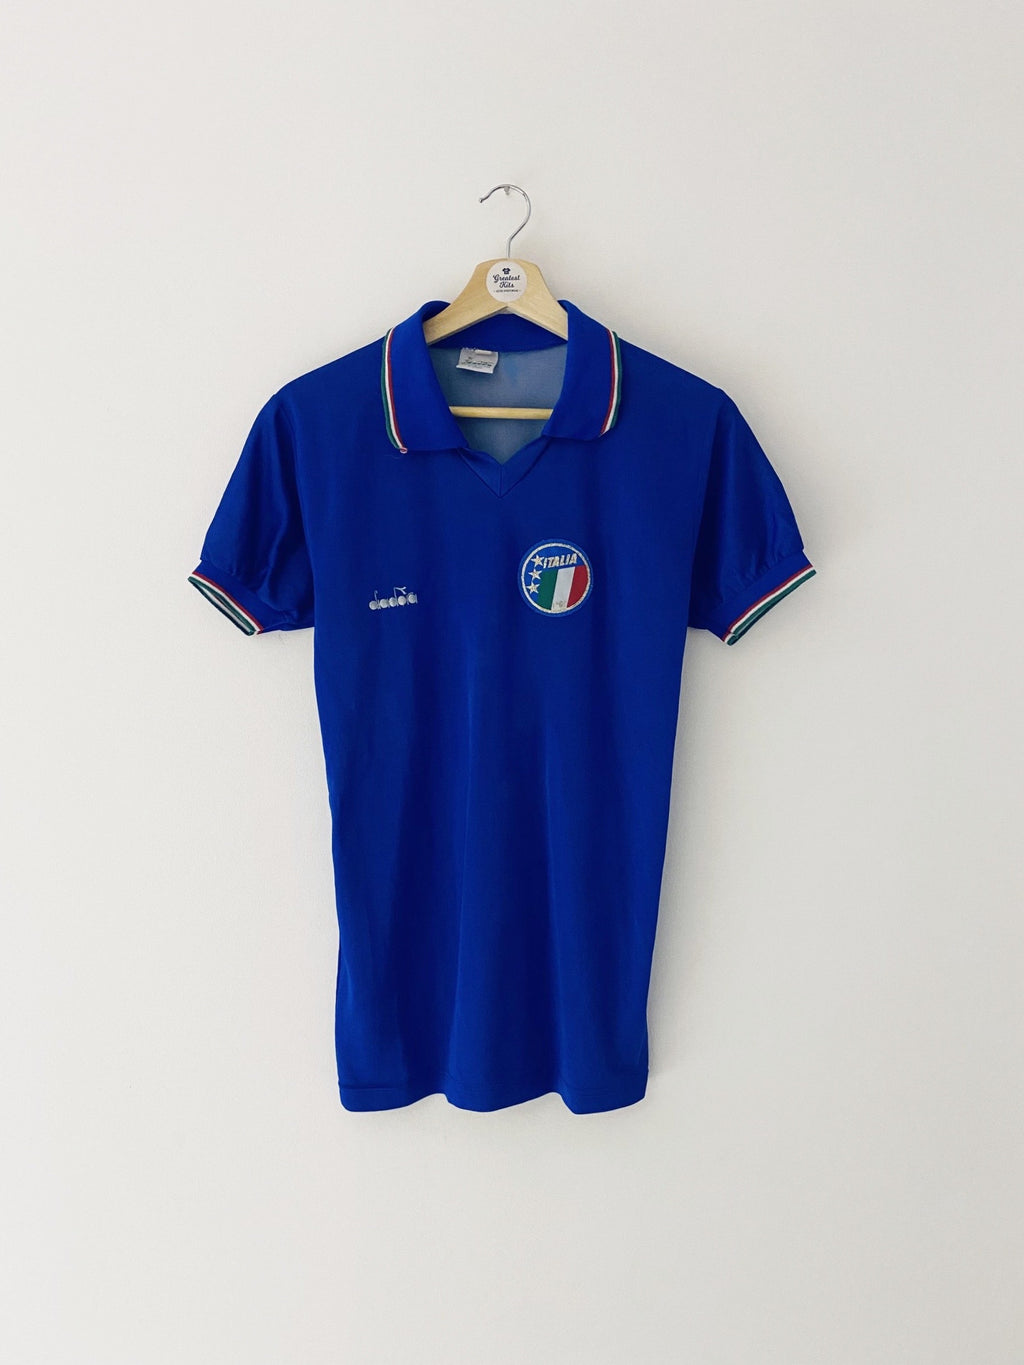 1986/90 Italy Home Shirt (S) 5.5/10